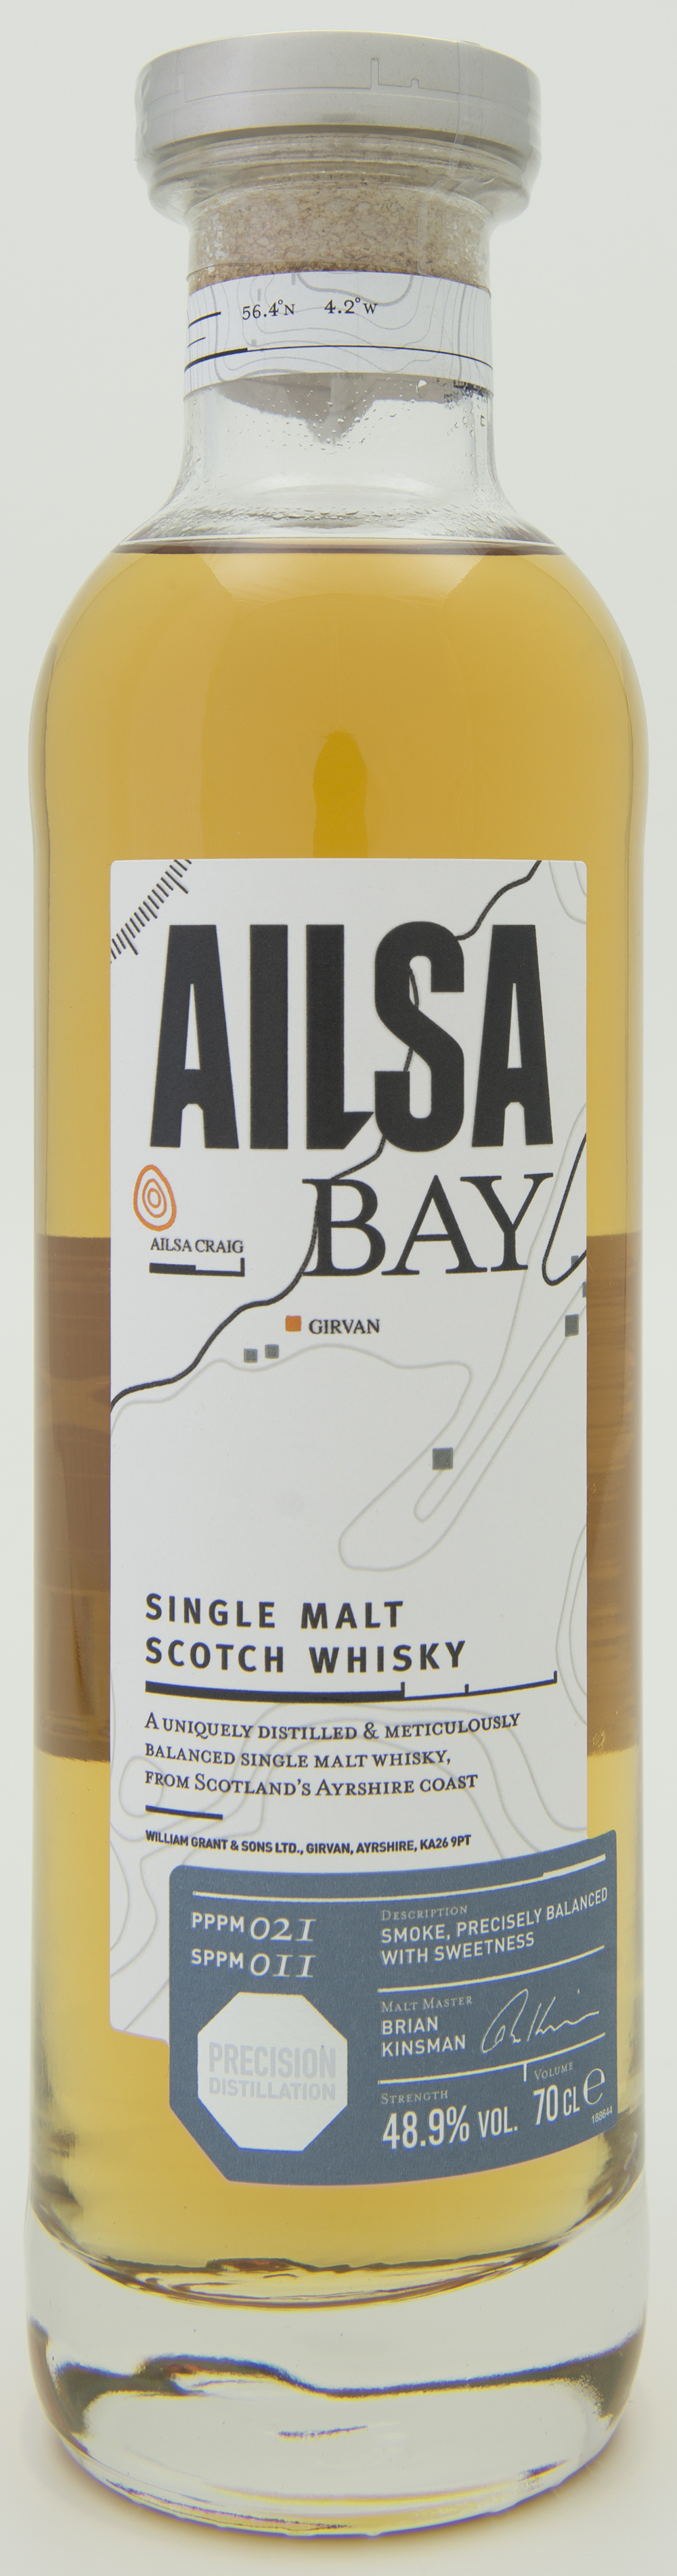 Billede: DSC_0747 - Ailsa Bay - bottle.jpg